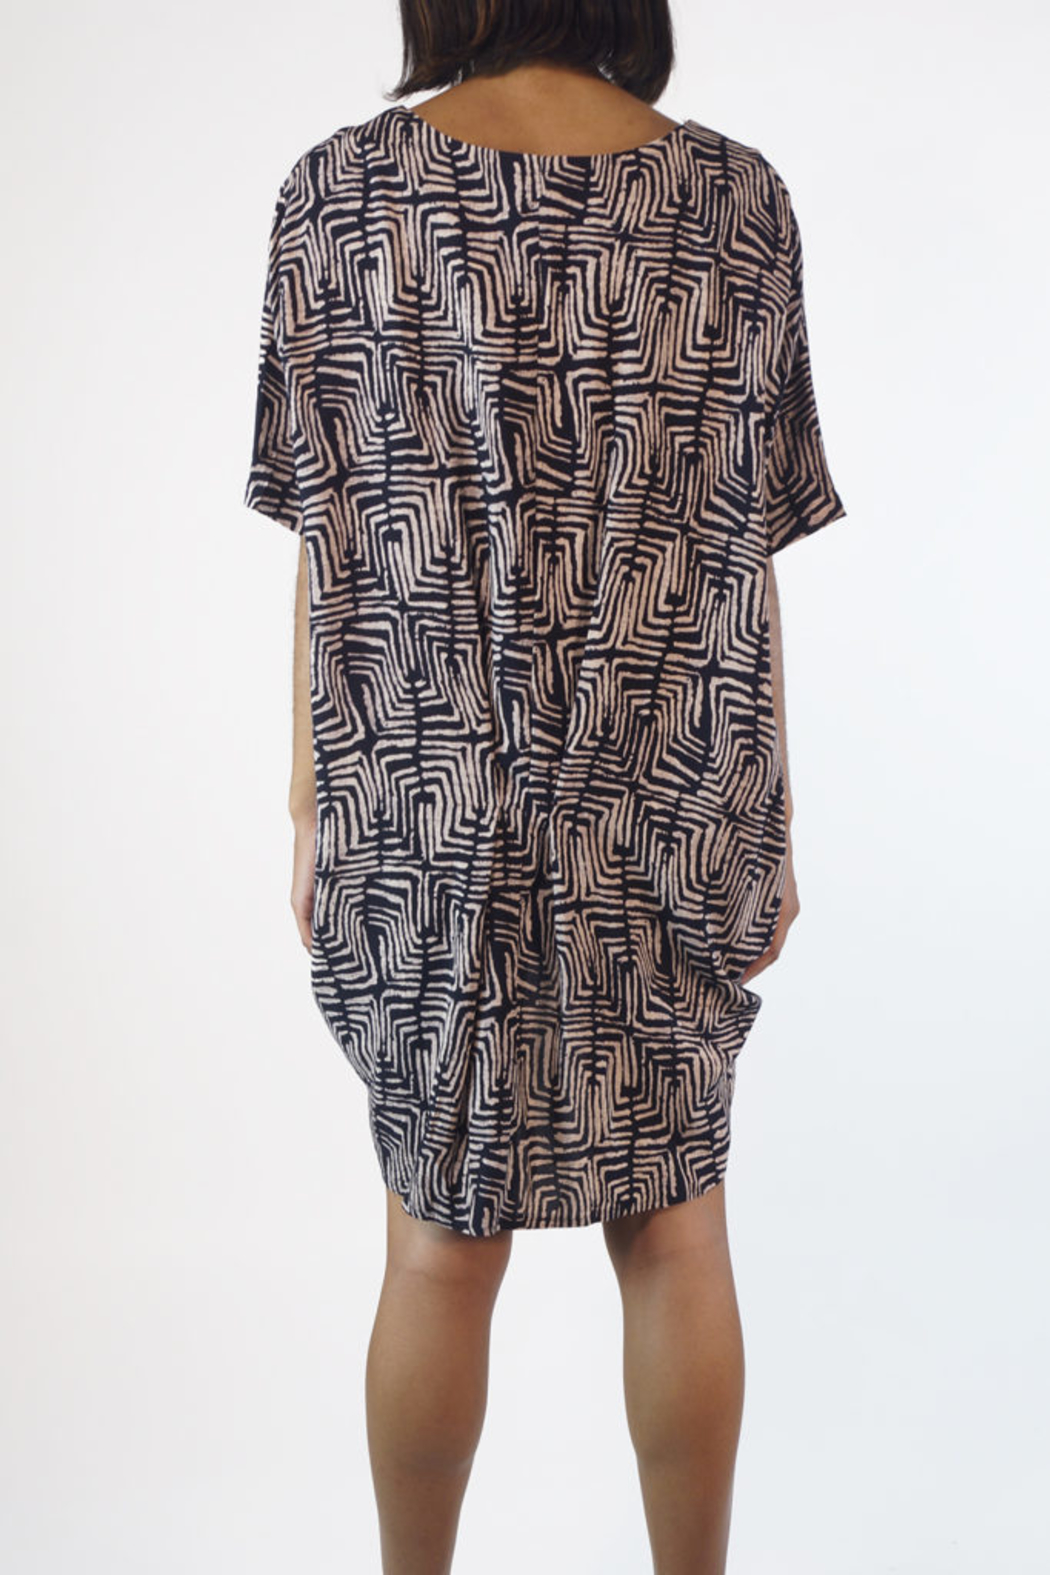 NU New York SCOOP GEO TUNIC - Back Cropped Image